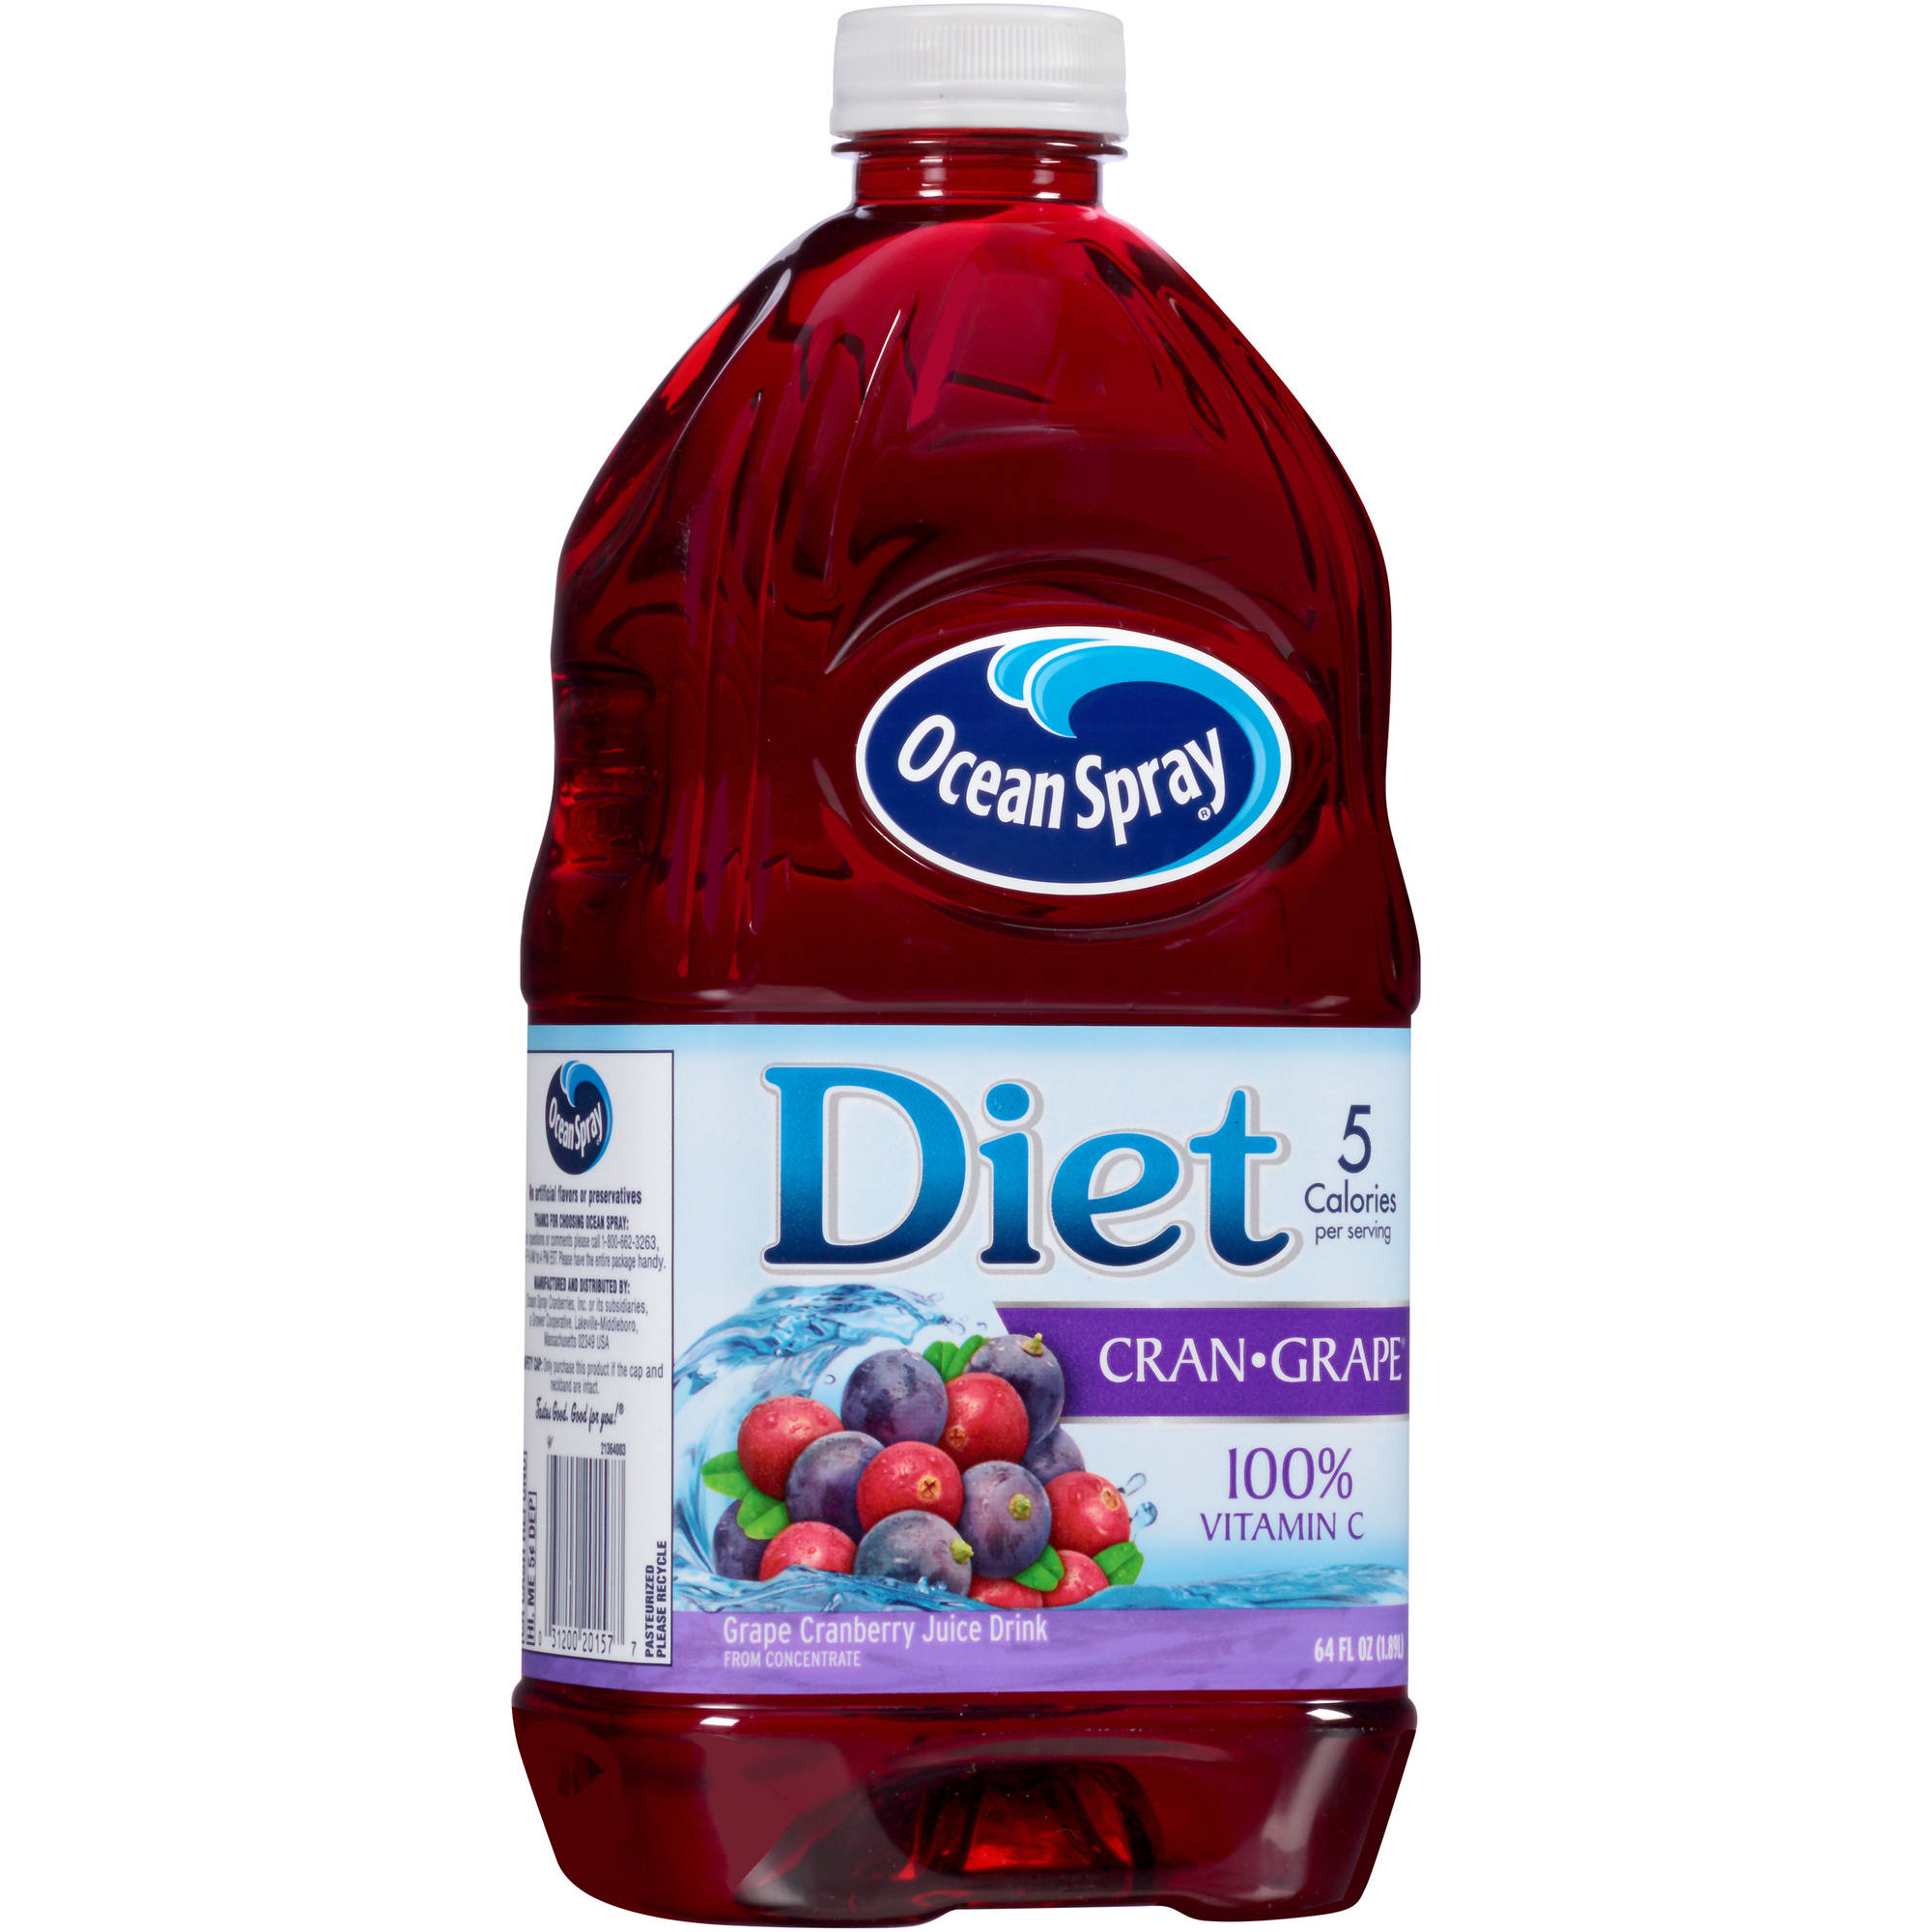 Ocean Spray Diet Cranberry Grape Spray Juice, 64 fl oz